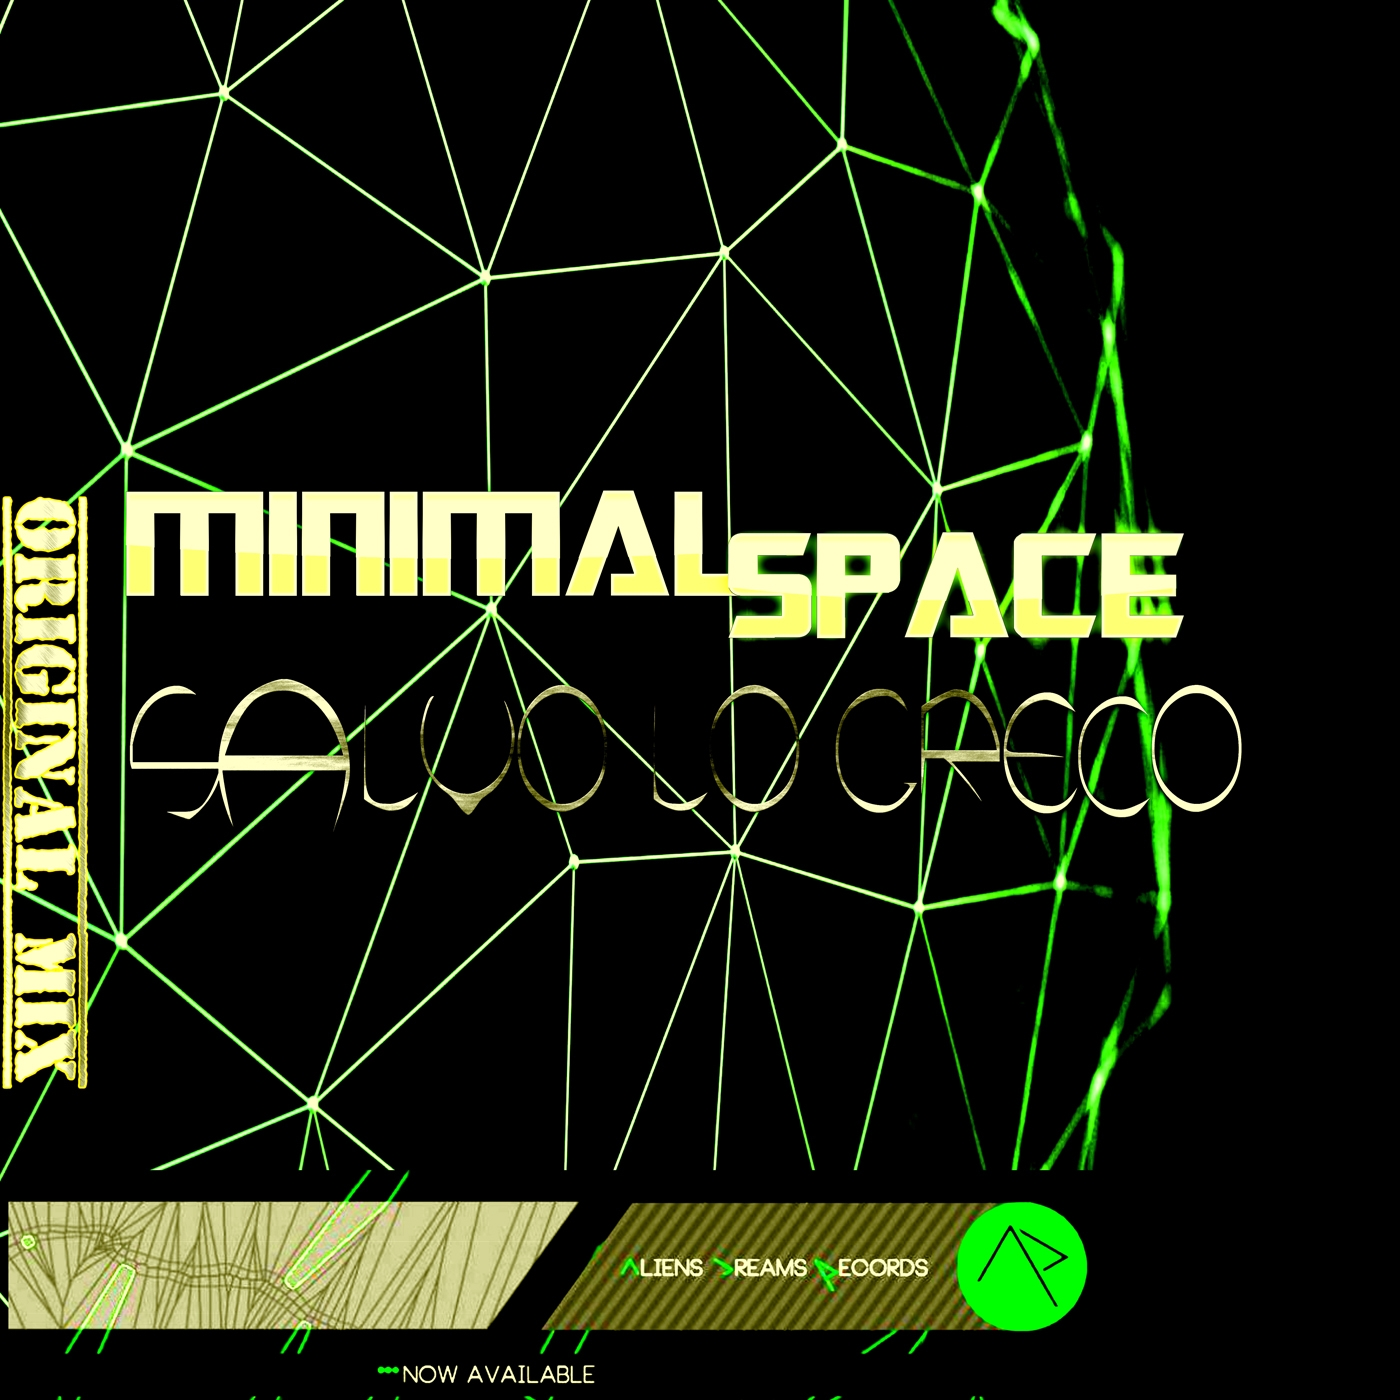 Salvo Lo Greco - Minimal Space (Original mix)